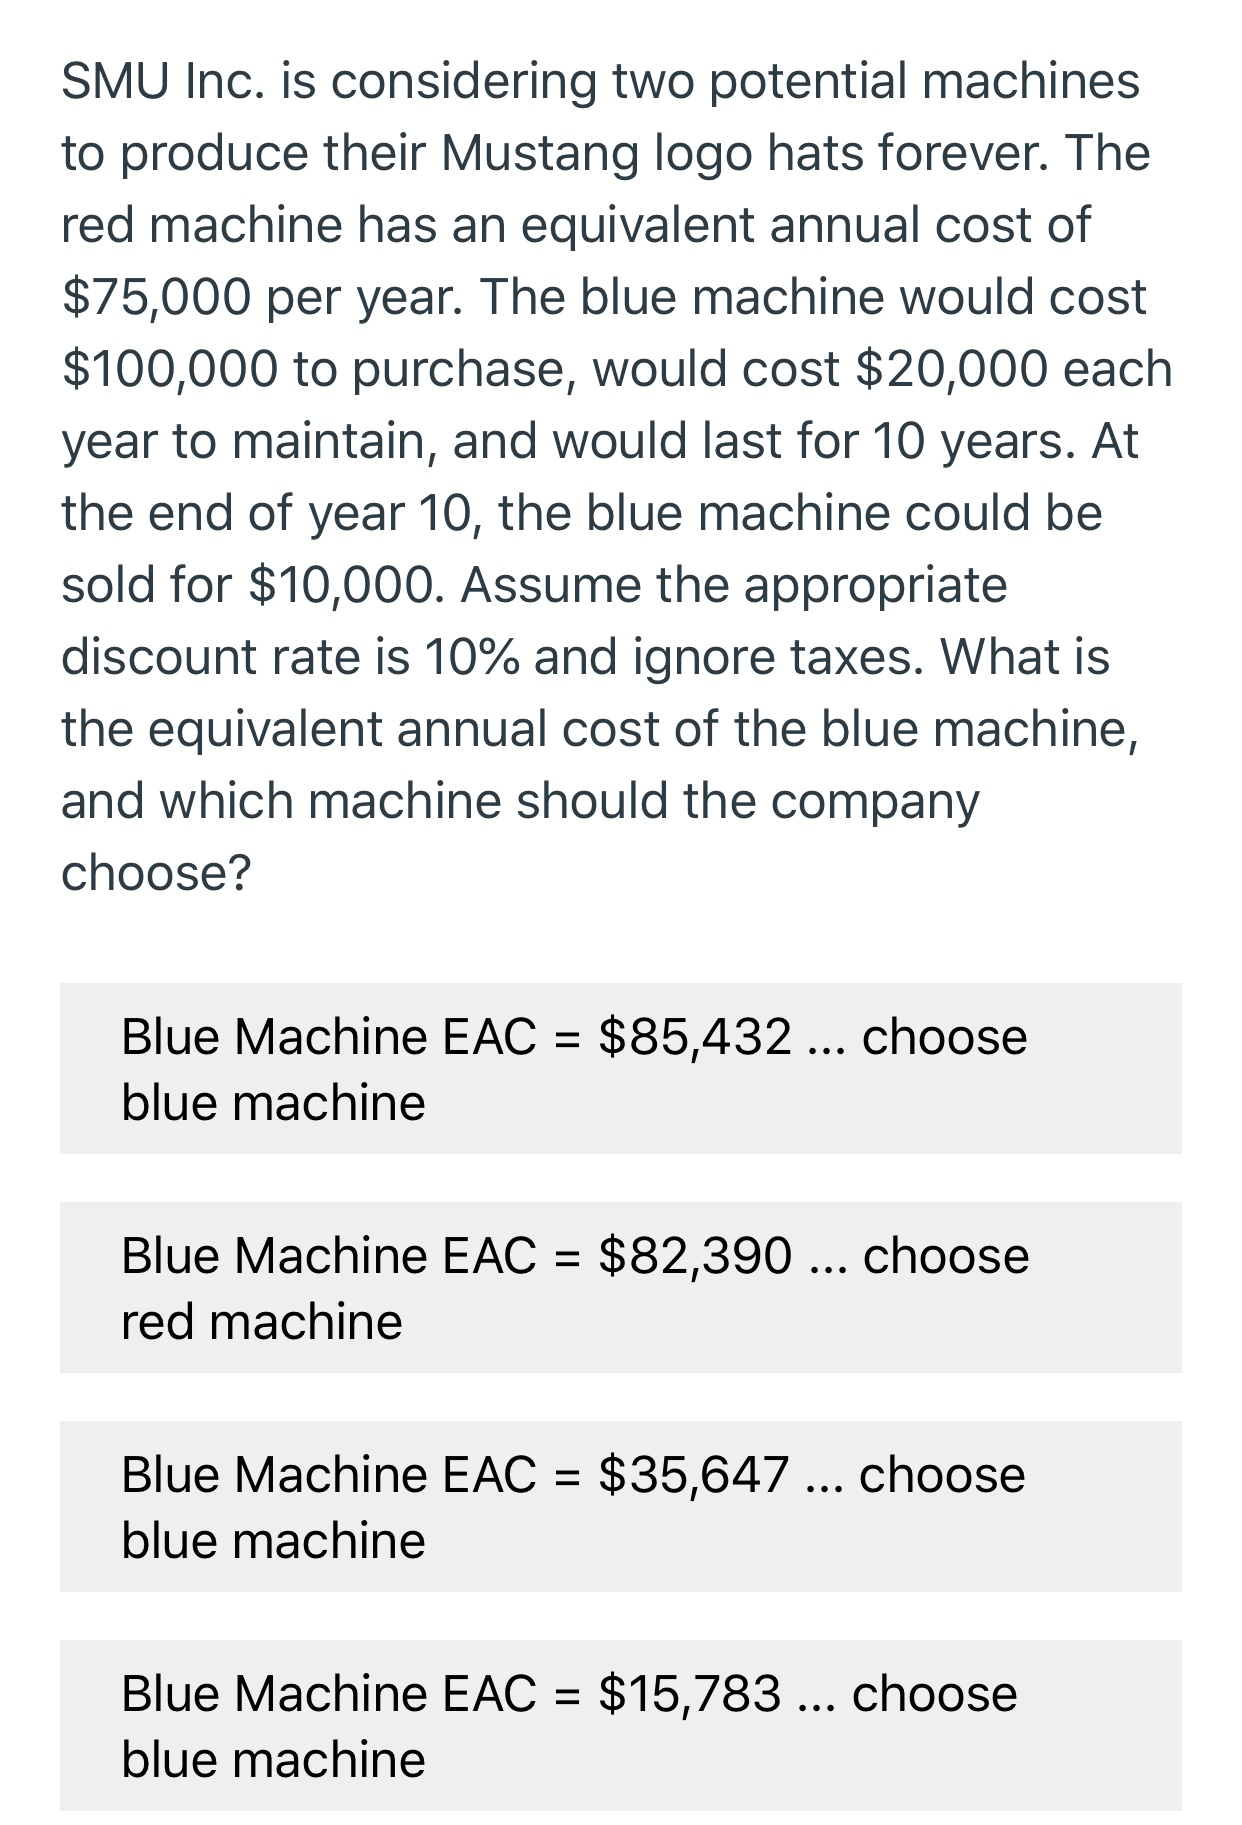 SMU Inc. is considering two potential machines to produce their Mustang logo hats forever. The red machine has an equivalent annual cost of $75,000 per year. The blue machine would cost $100,000 to purchase, would cost $20,000 each year to maintain, and would last for 10 years. At the end of year 10, the blue machine could be sold for $10,000. Assume the appropriate discount rate is 10% and ignore taxes. What is the equivalent annual cost of the blue machine, and which machine should the company choose? $85,432... choose Blue Machine EAC blue machine Blue Machine EAC $82,390... choose red machine $35,647 ... choose Blue Machine EAC blue machine $15,783... choose Blue Machine EAC blue machine